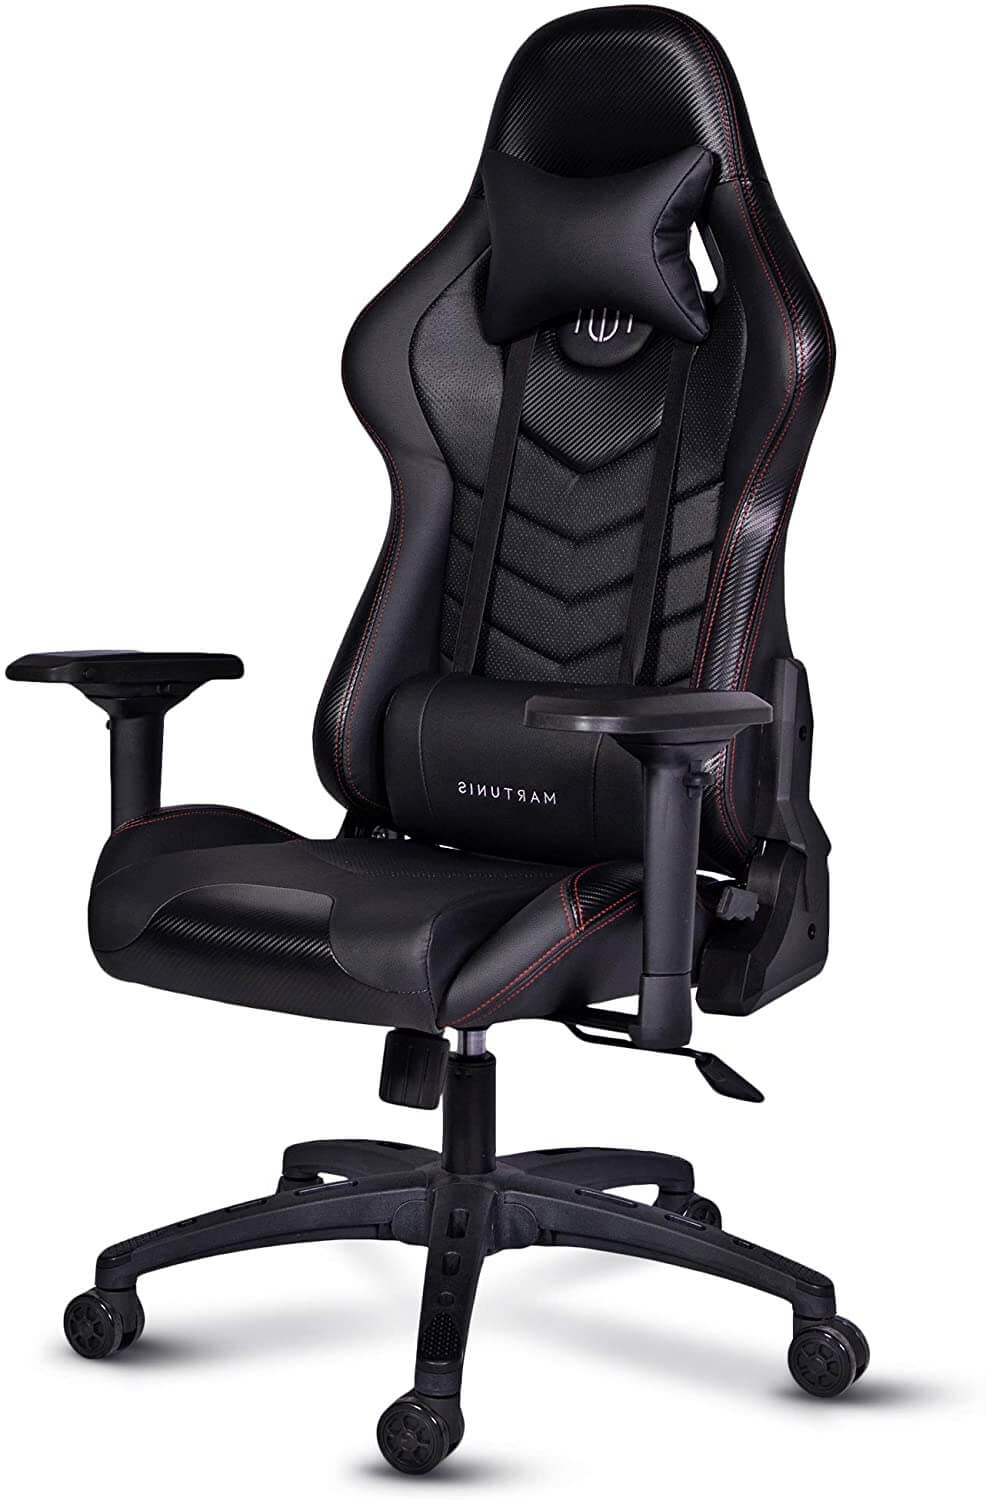 Martunis budget desk gaming chair for pc in uk